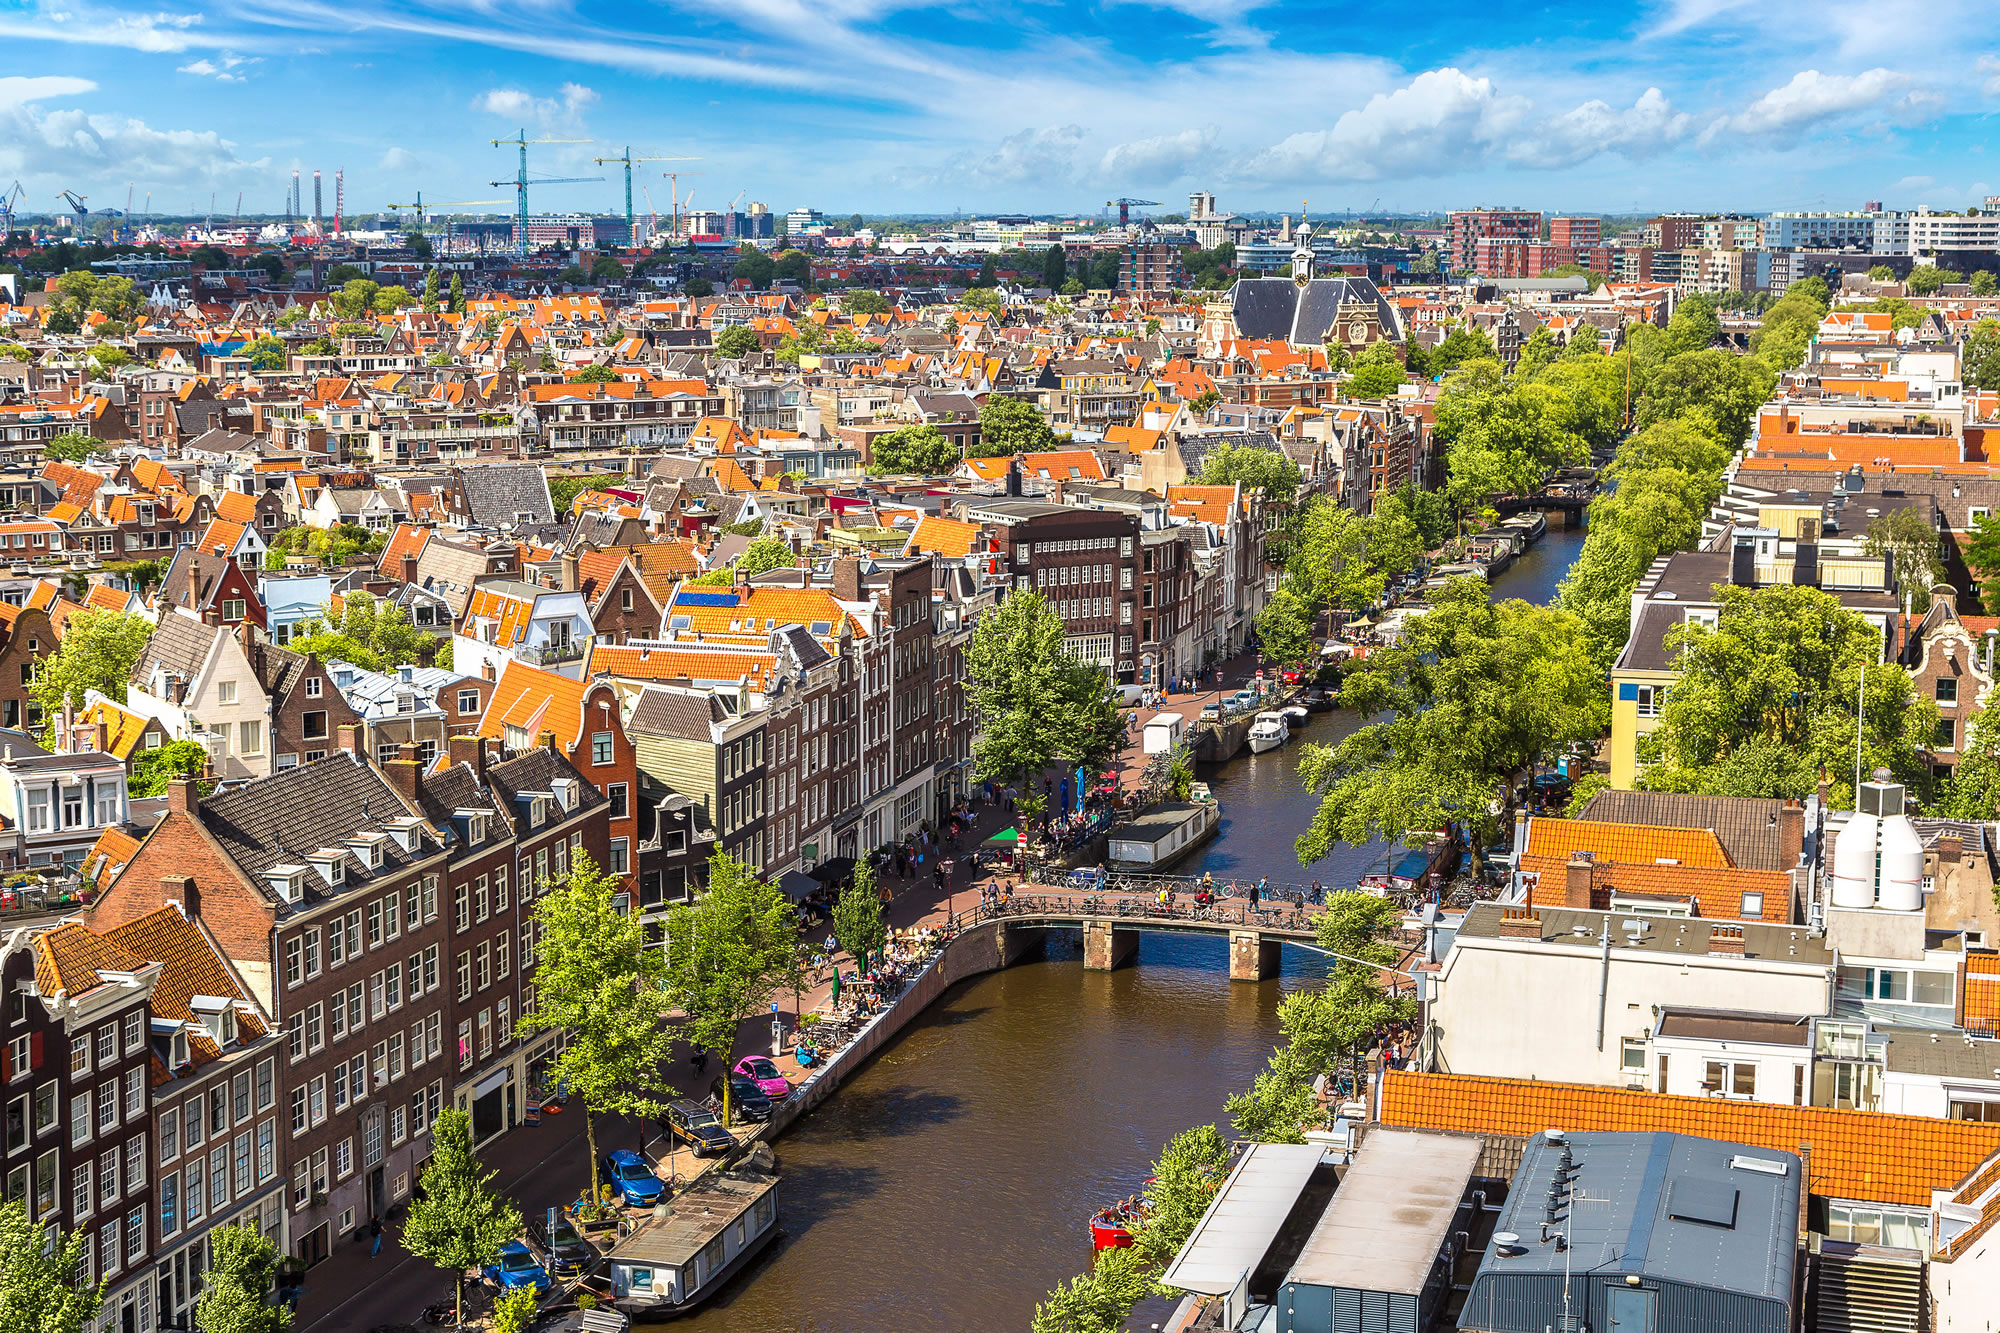 Panoramic aerial view from Amsterdam, Netherlands